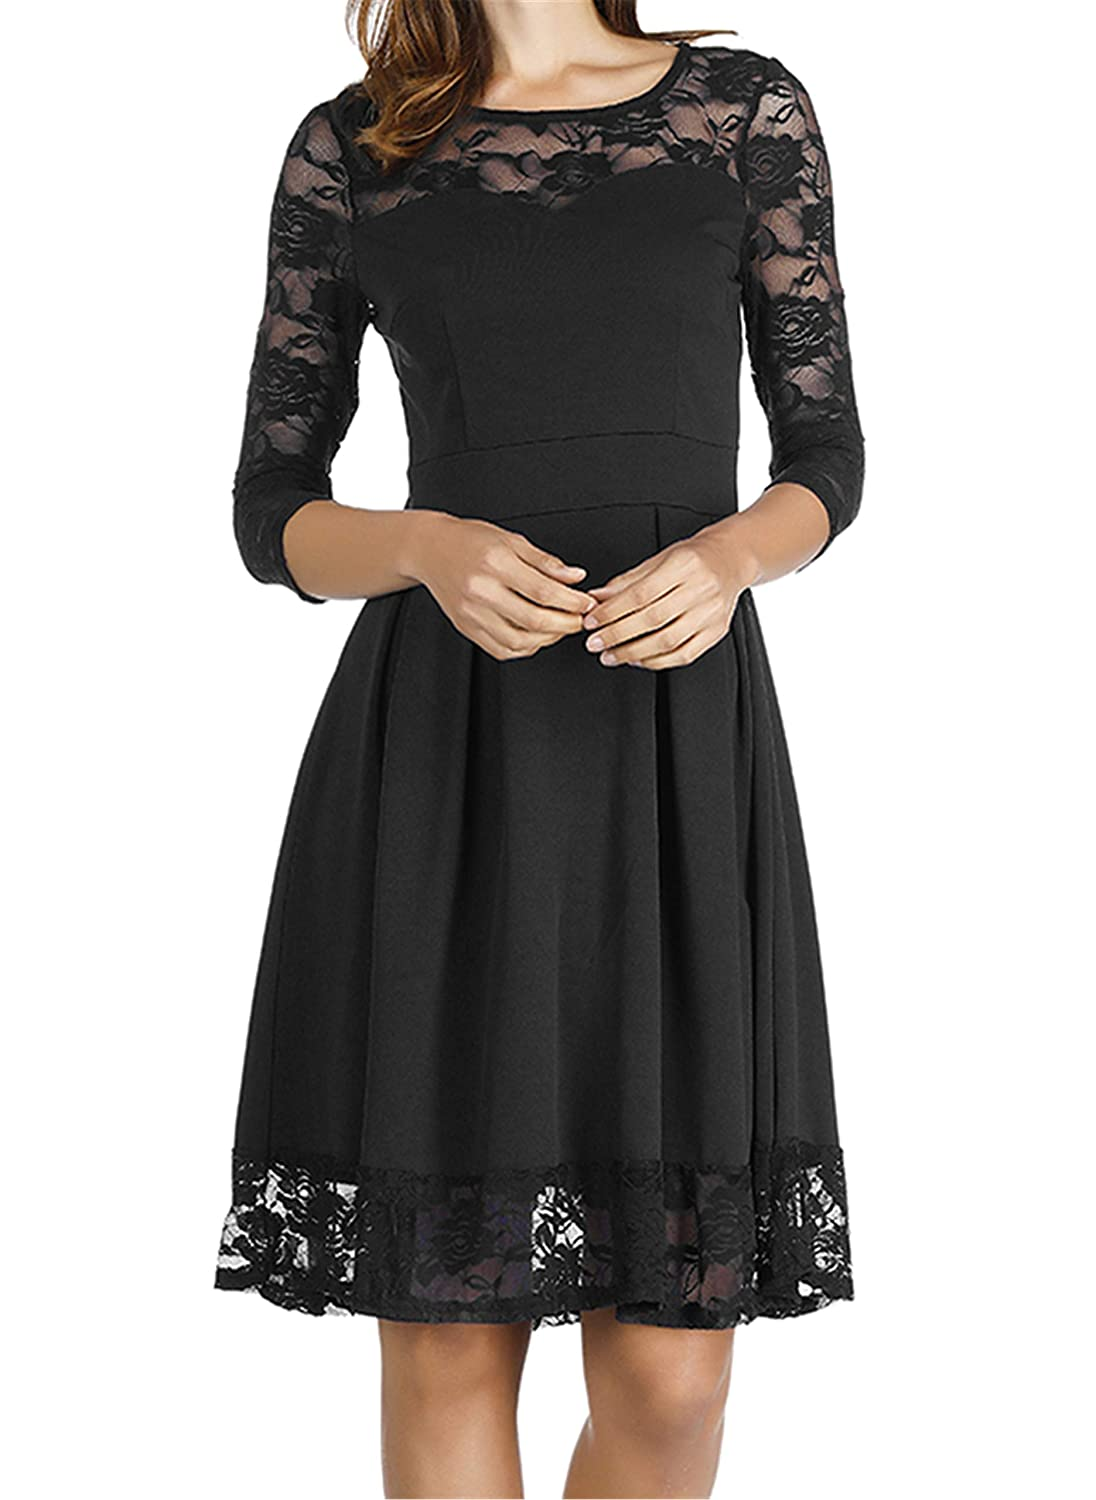 Akivide Womens Sleeveless 34 Sleeve Cocktail Lace Wedding Guest